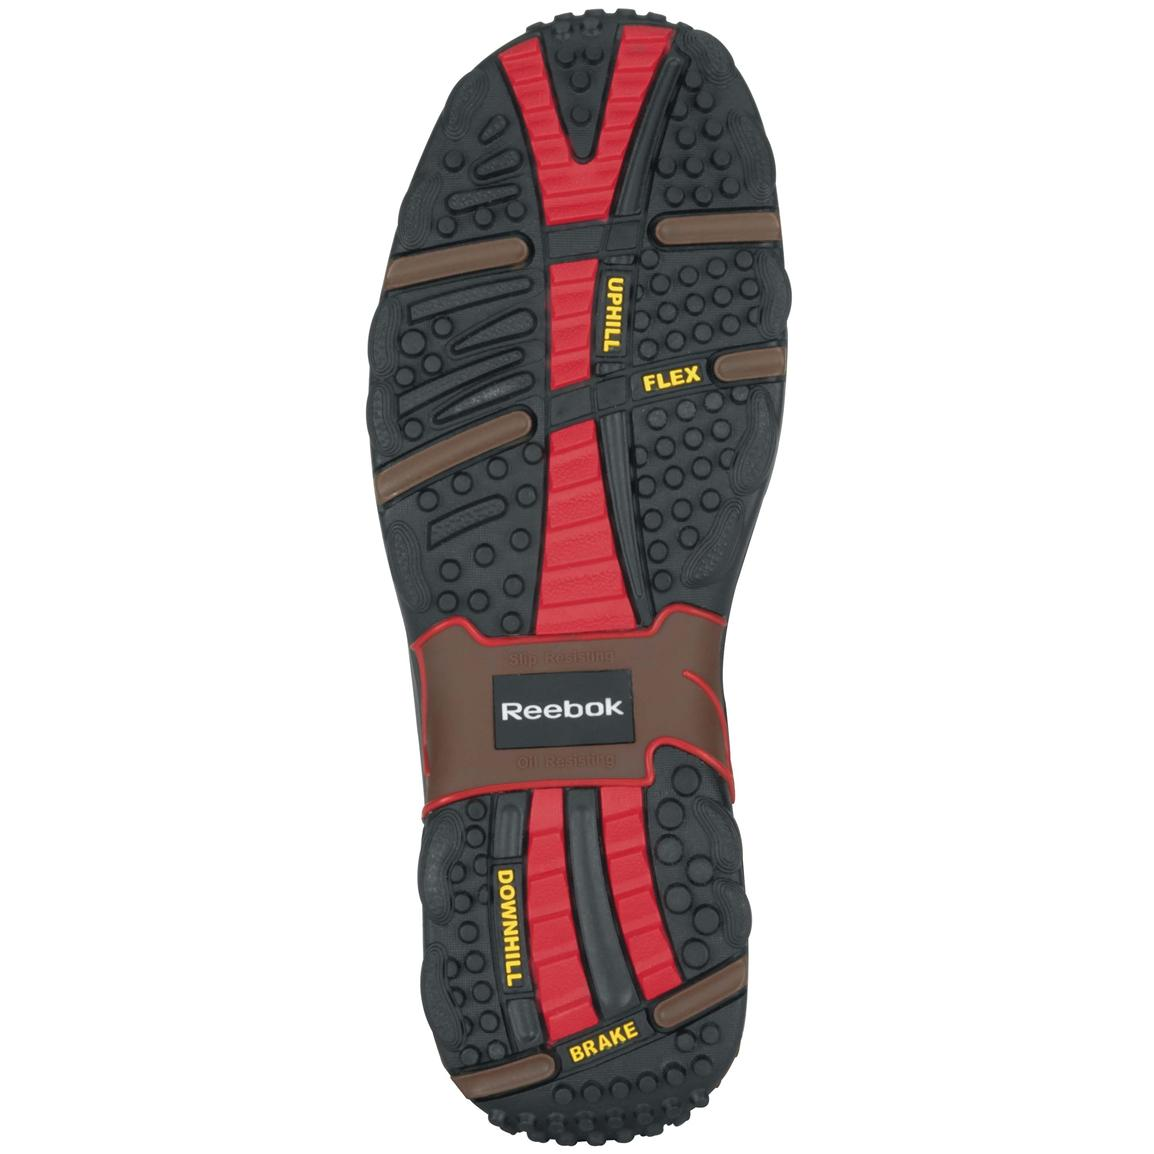 Dual-density, direct-attached rubber outsole delivers sure-footed traction